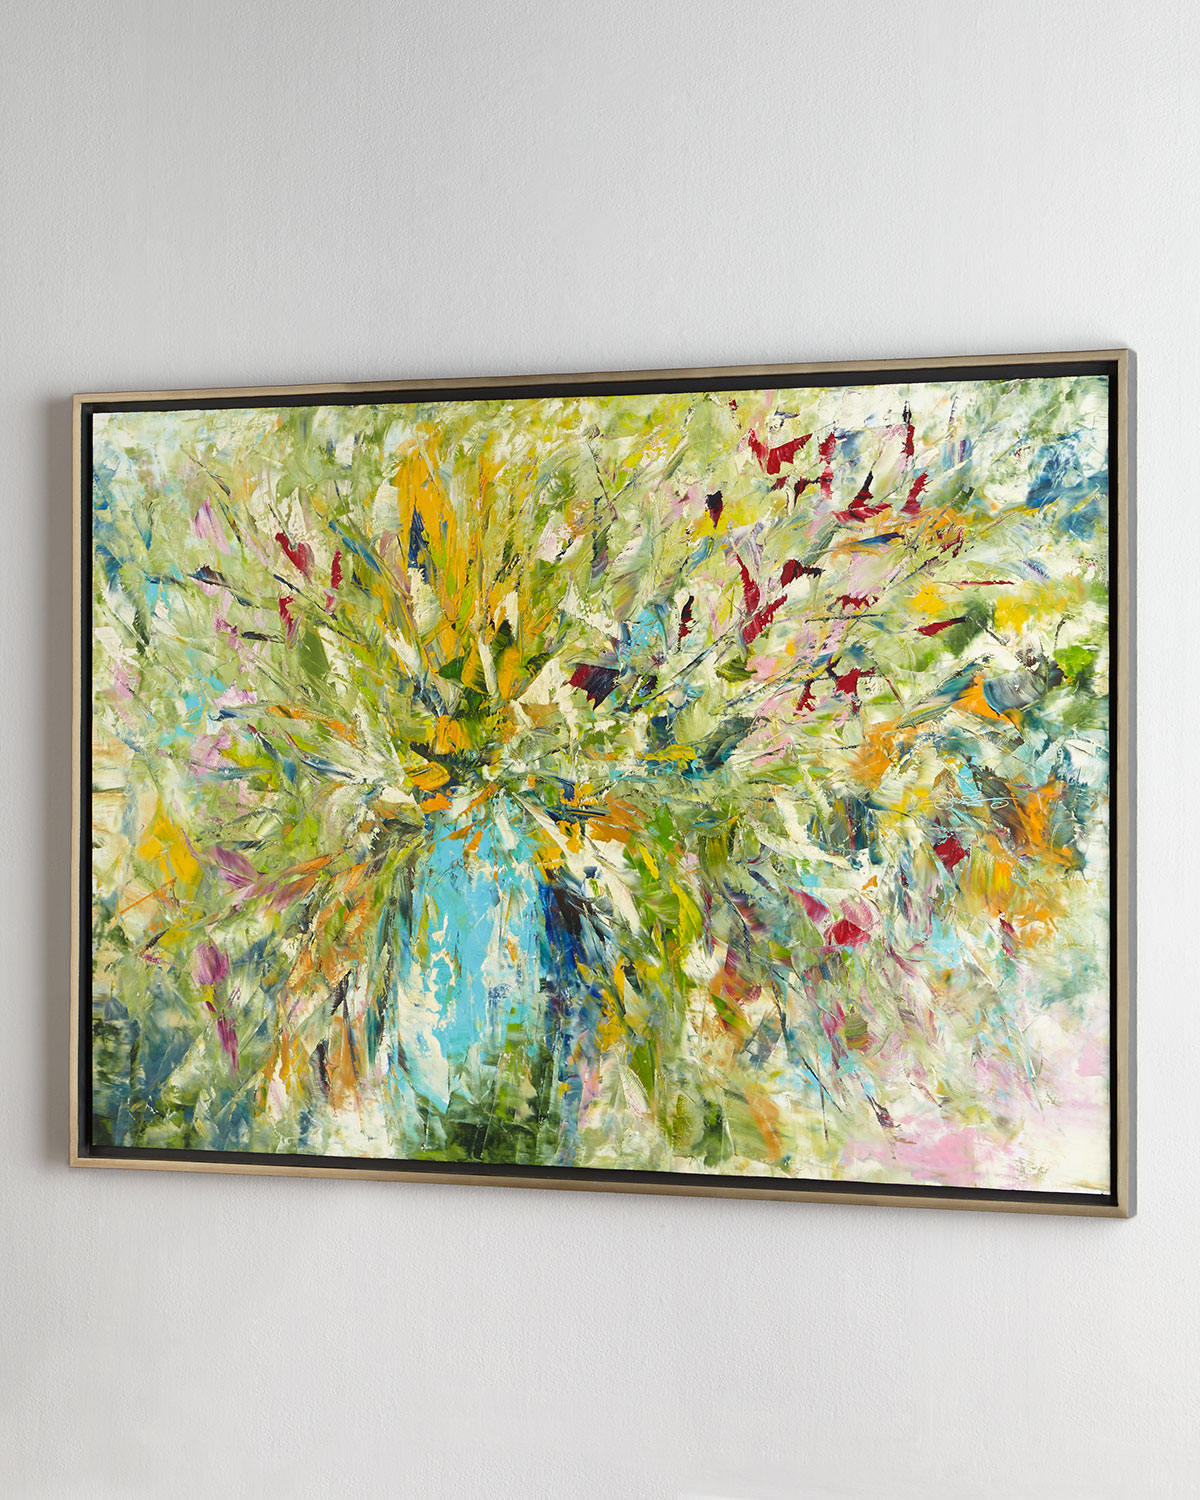 John-Richard Collection Jinlu Original Abstract Painting | Neiman Marcus